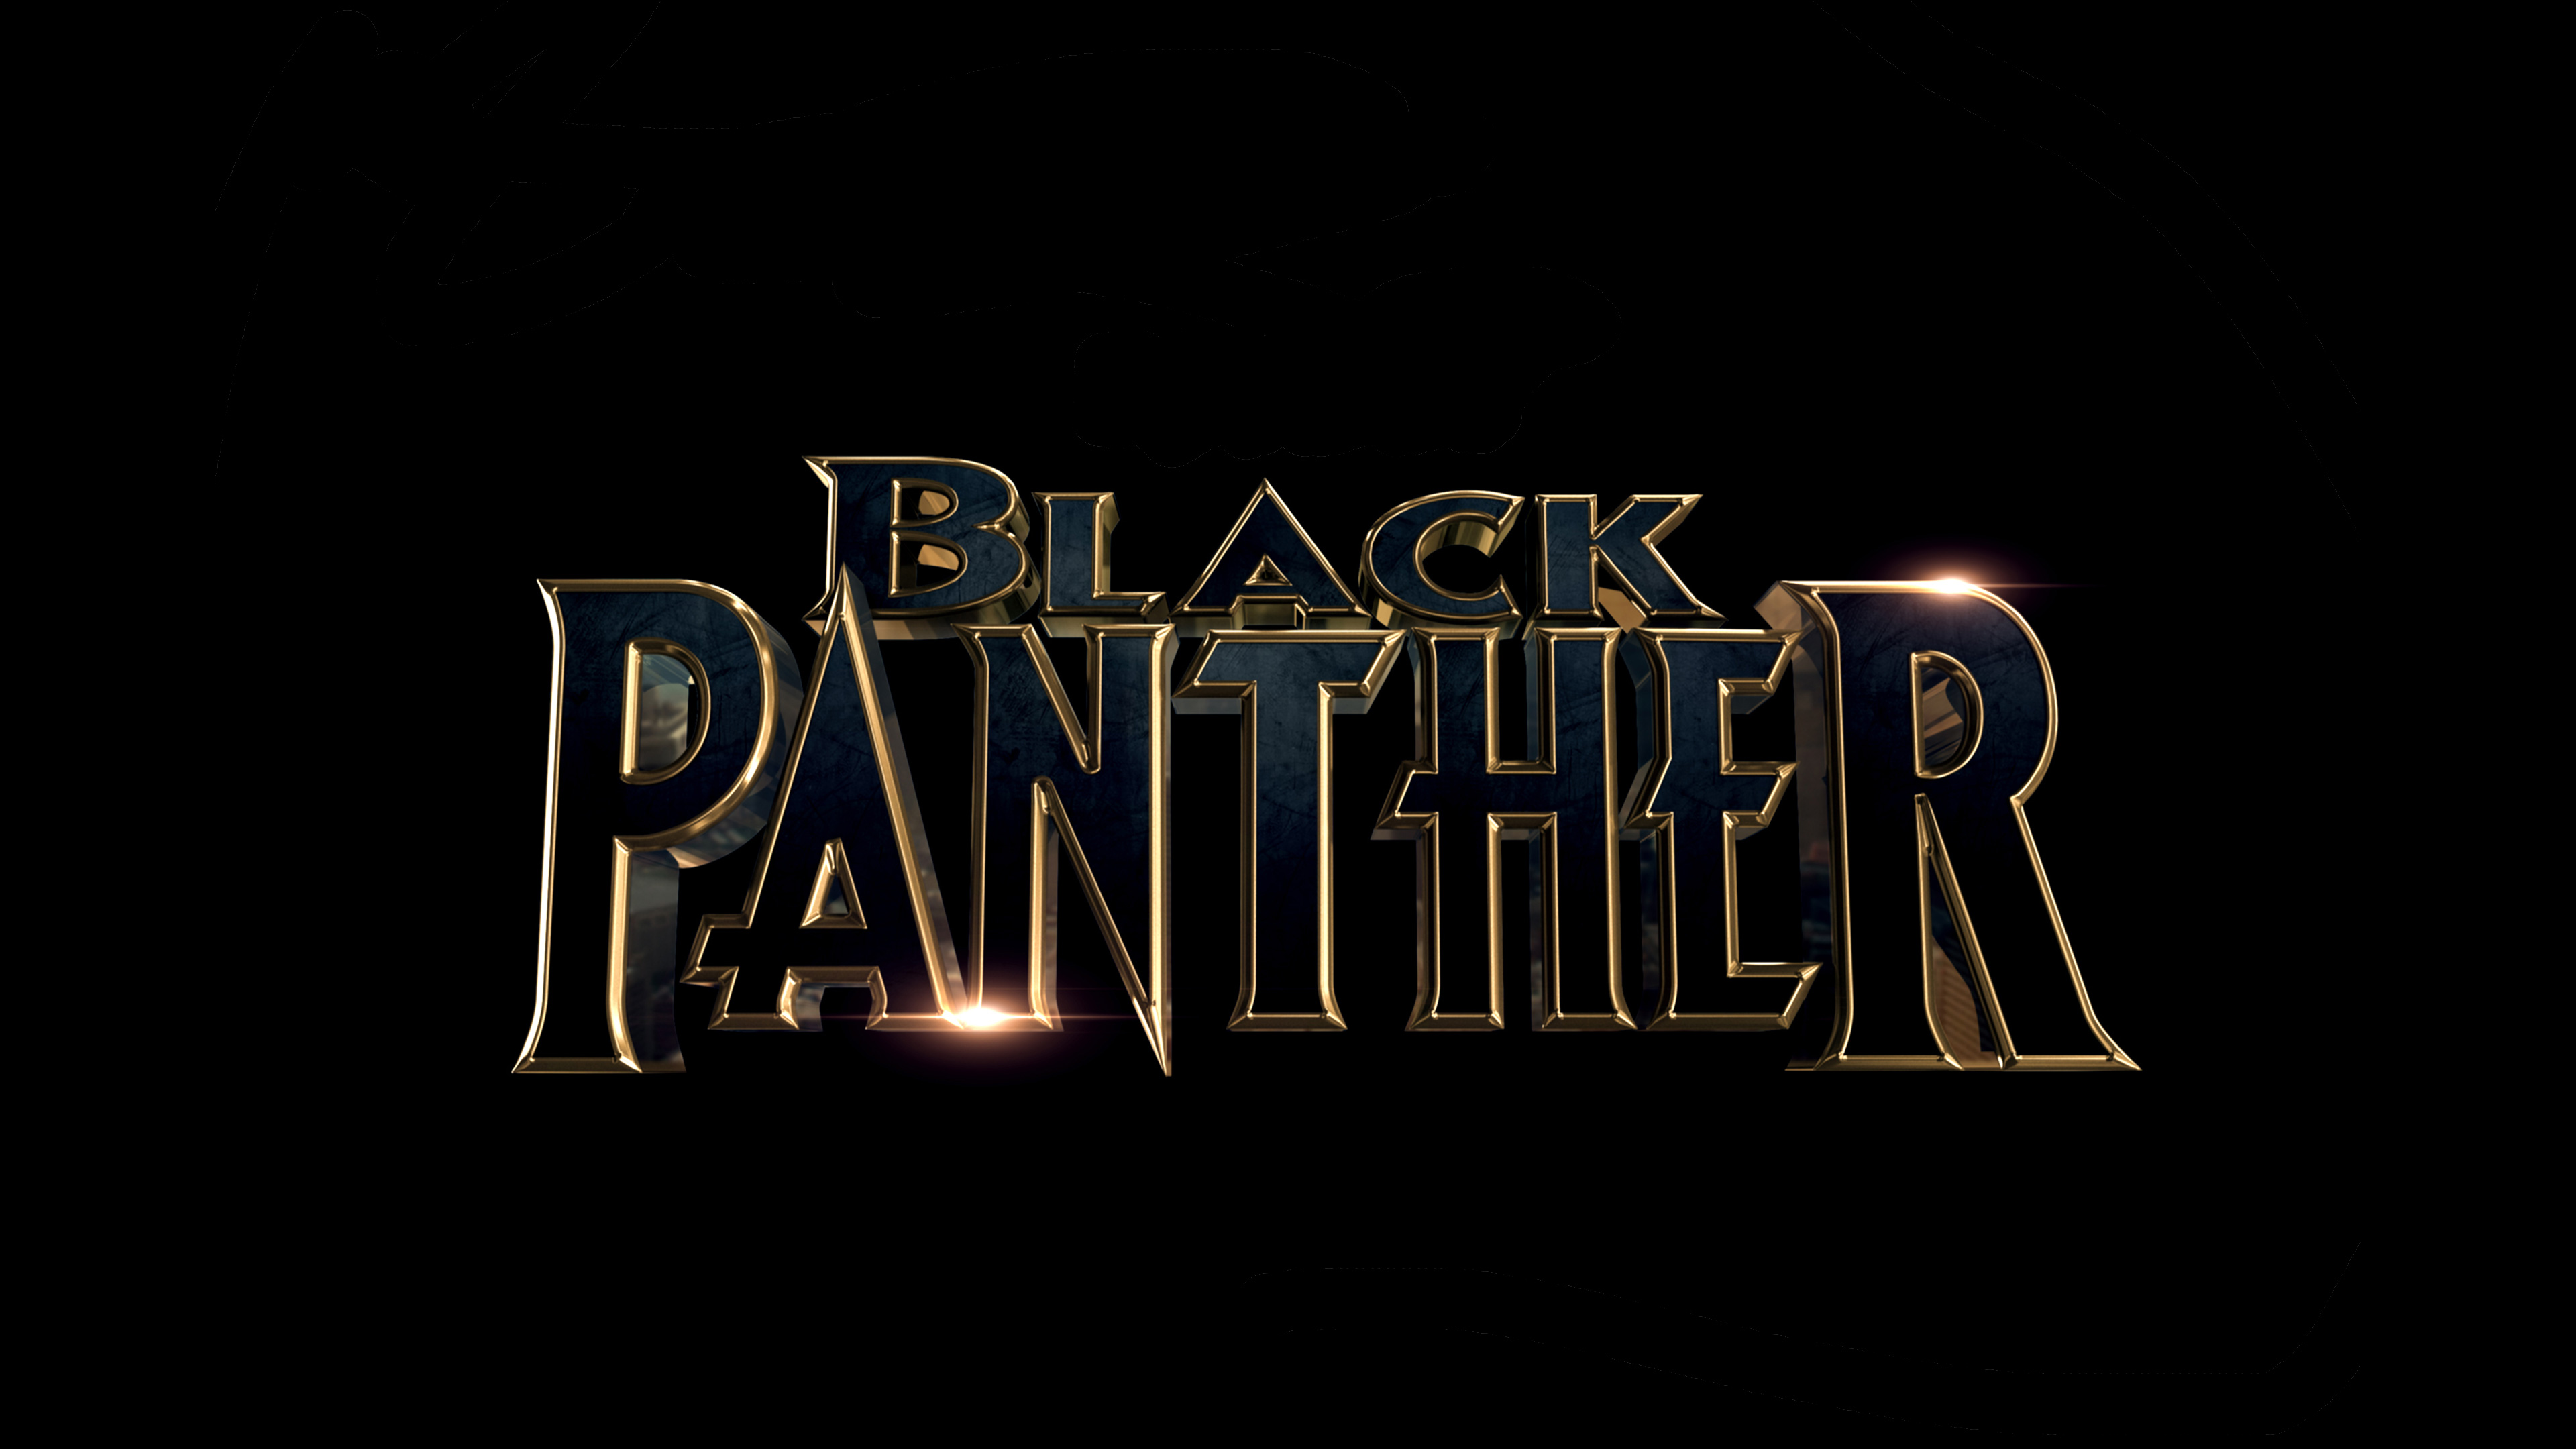 Wallpaper Black Panther 2018 Hd Movies 12198: Black Panther 2018 Movie, HD Movies, 4k Wallpapers, Images